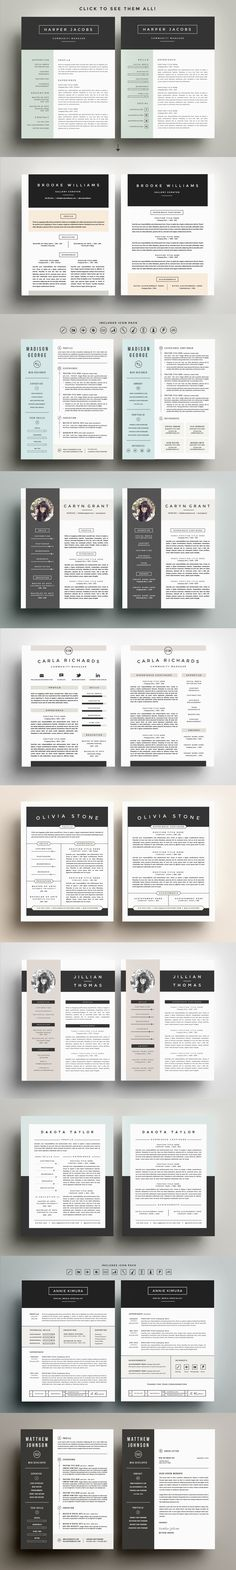 Go Big or Go Home! The Resume Bundle by Refinery Resume Co. on Creative Market